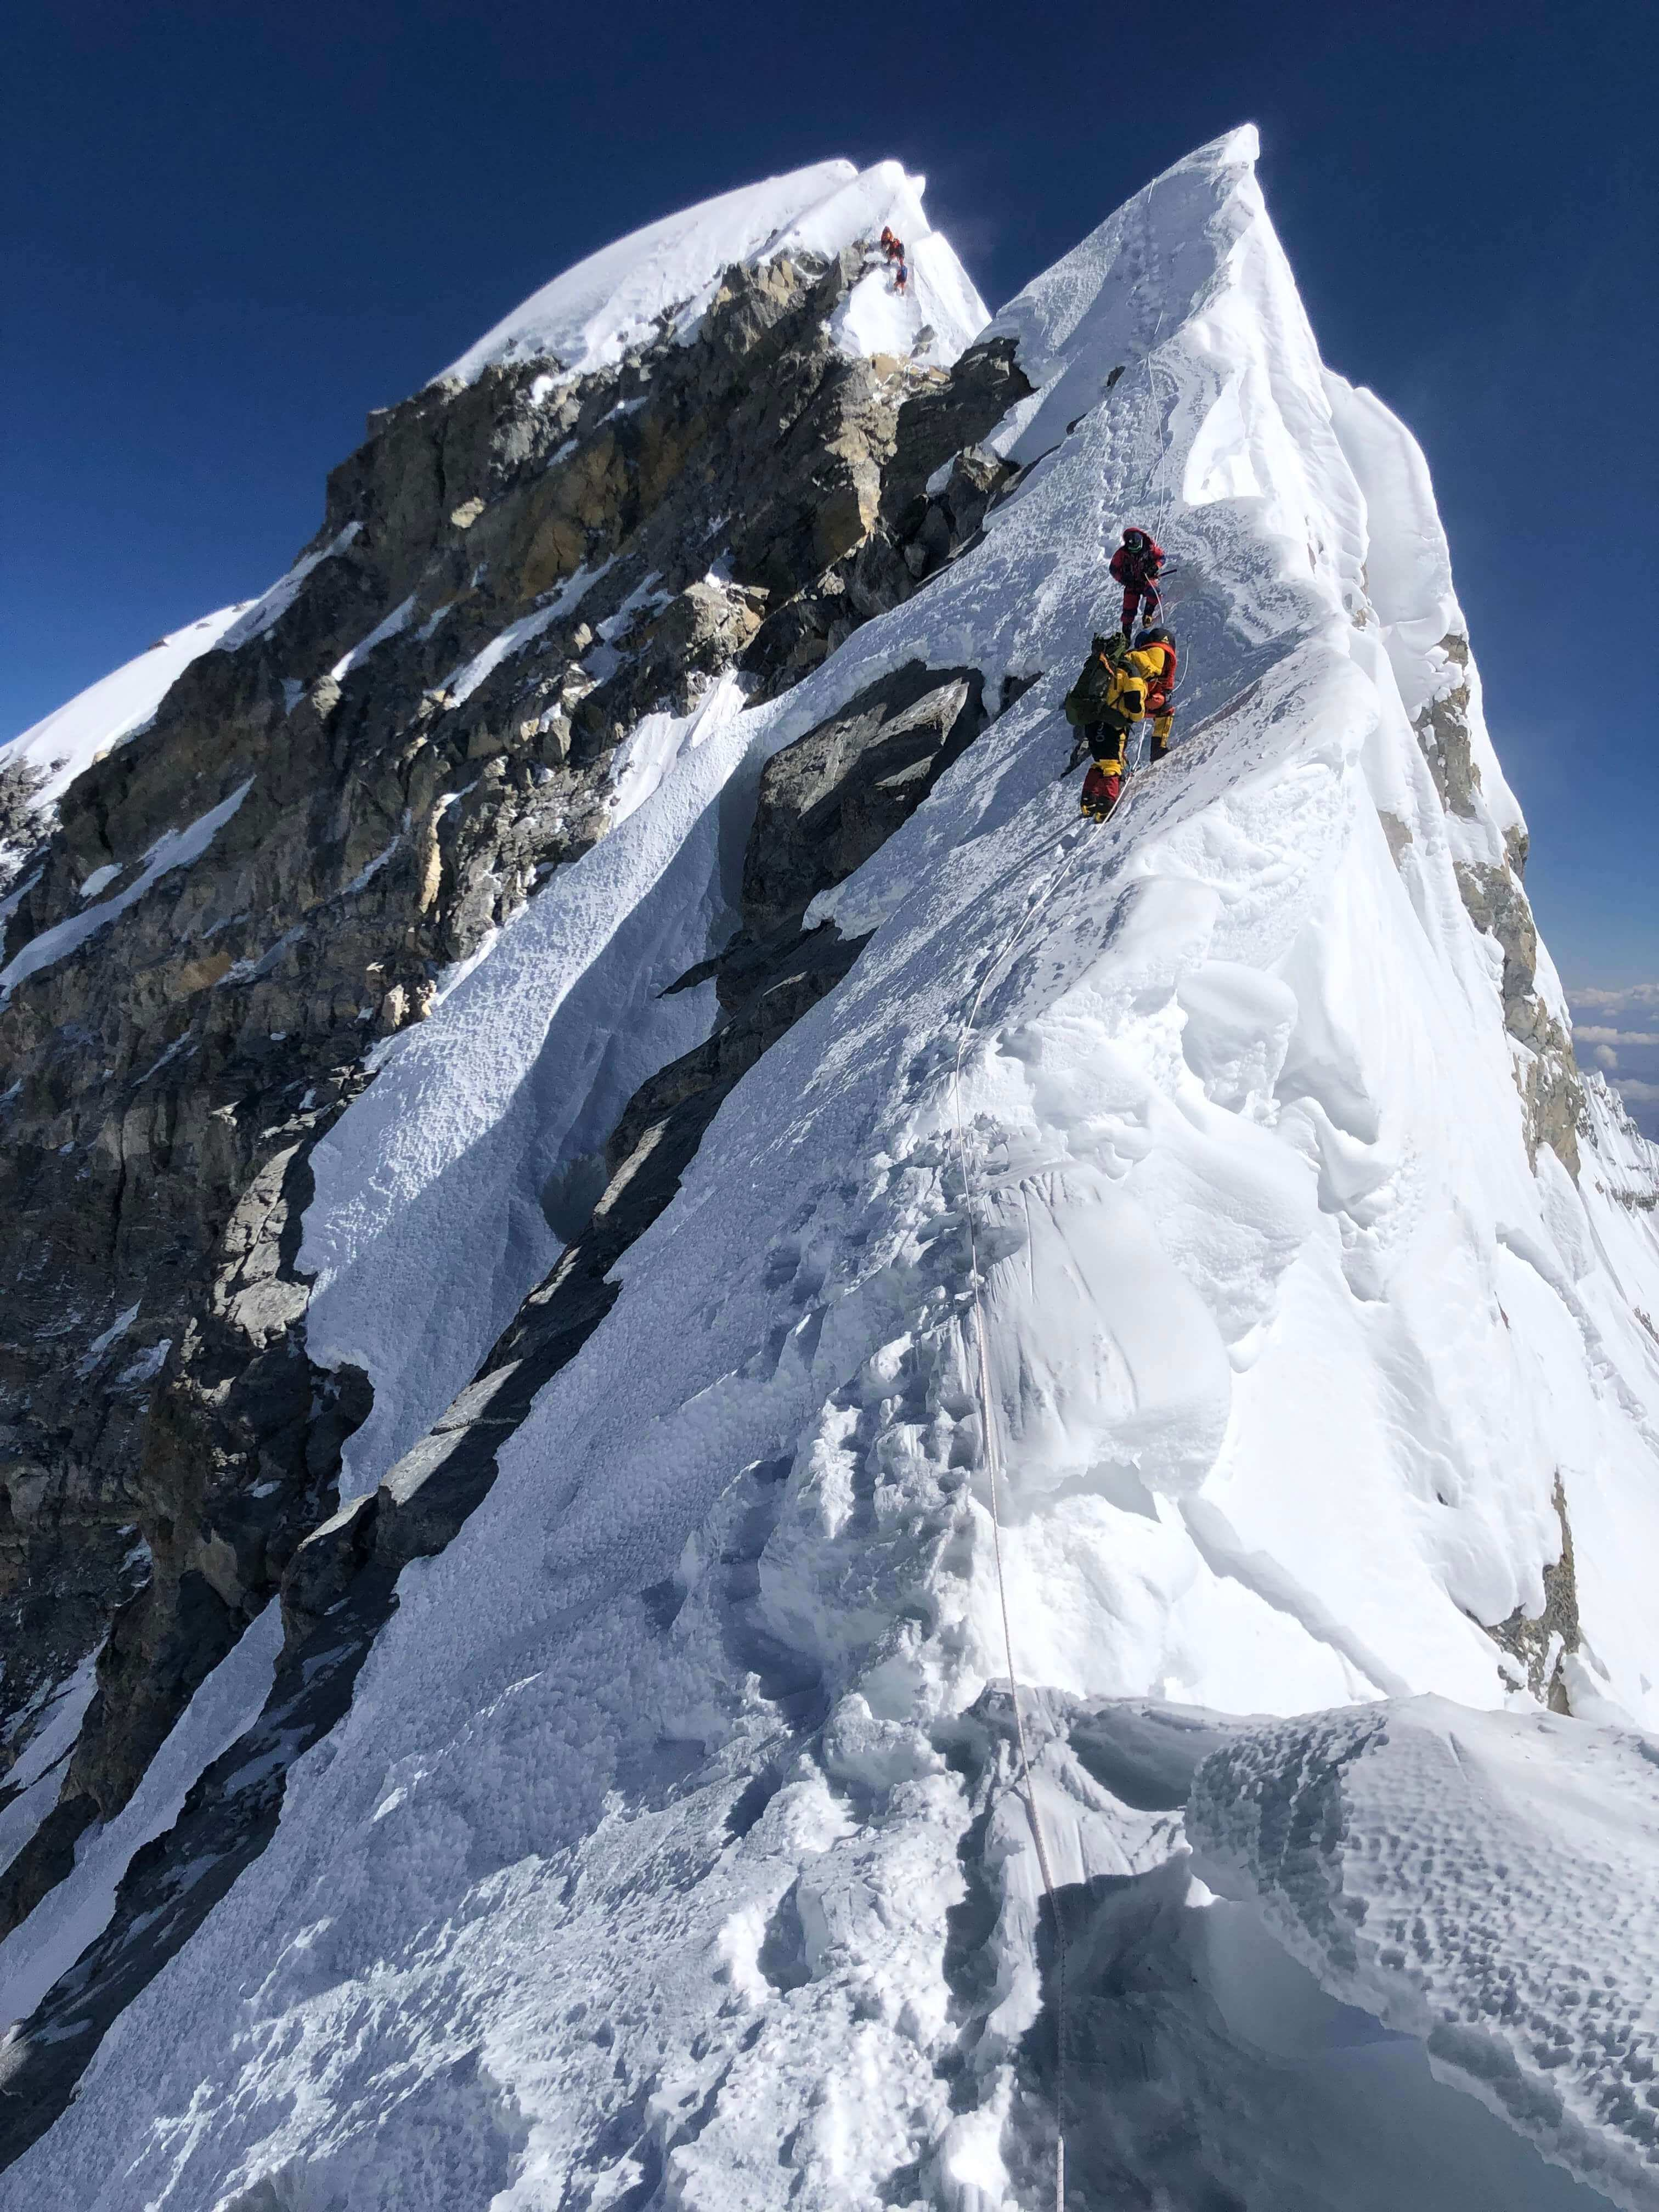 The Everest